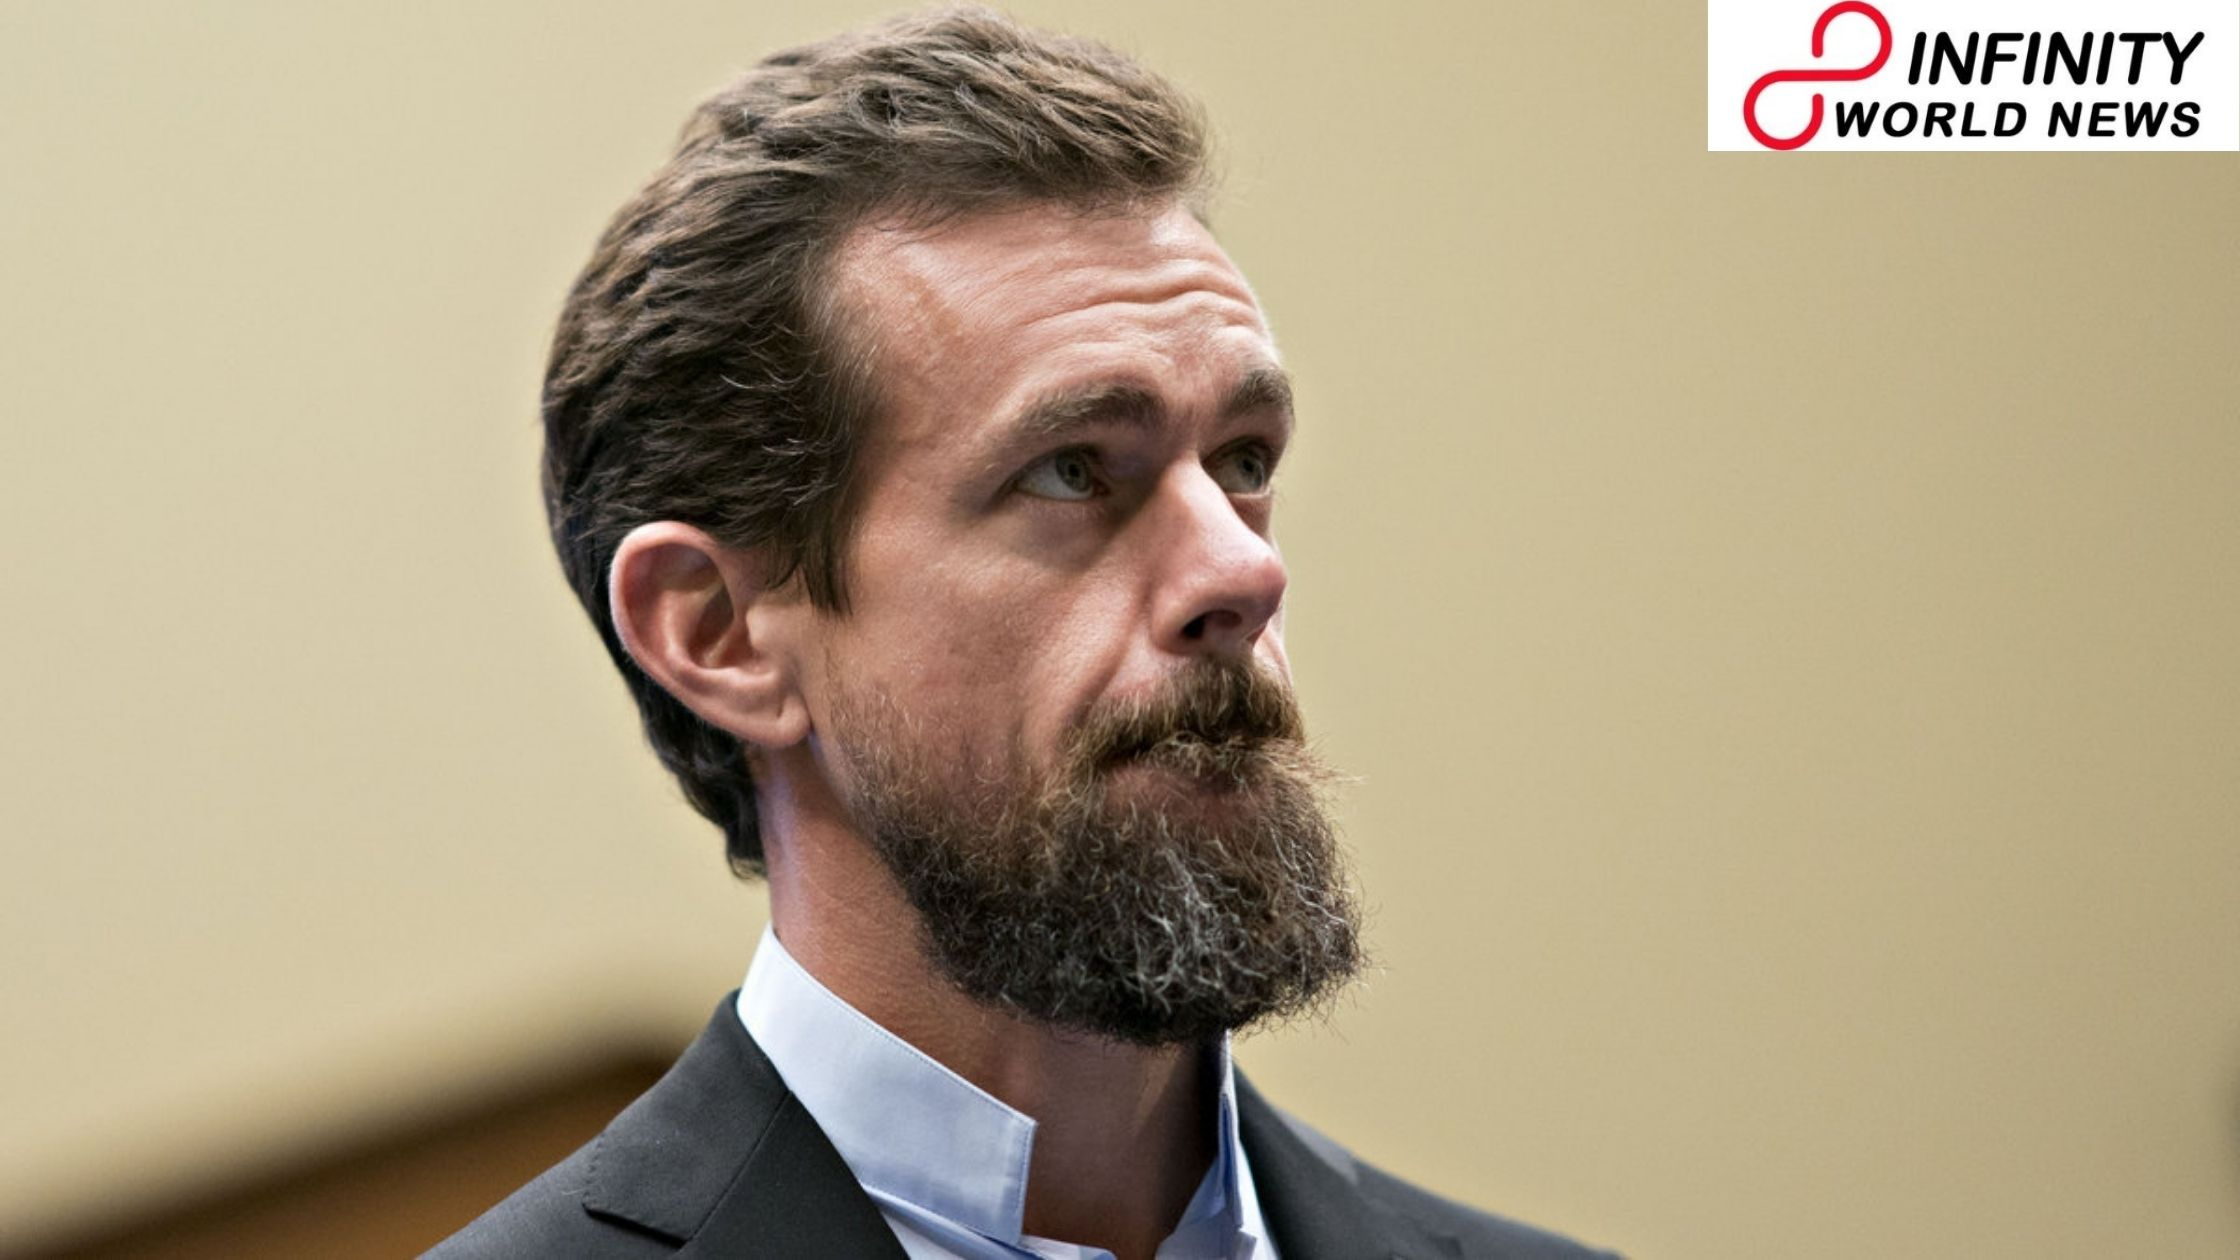 Jack Dorsey's First Tweet Gets Rs 18 Crore in Auction